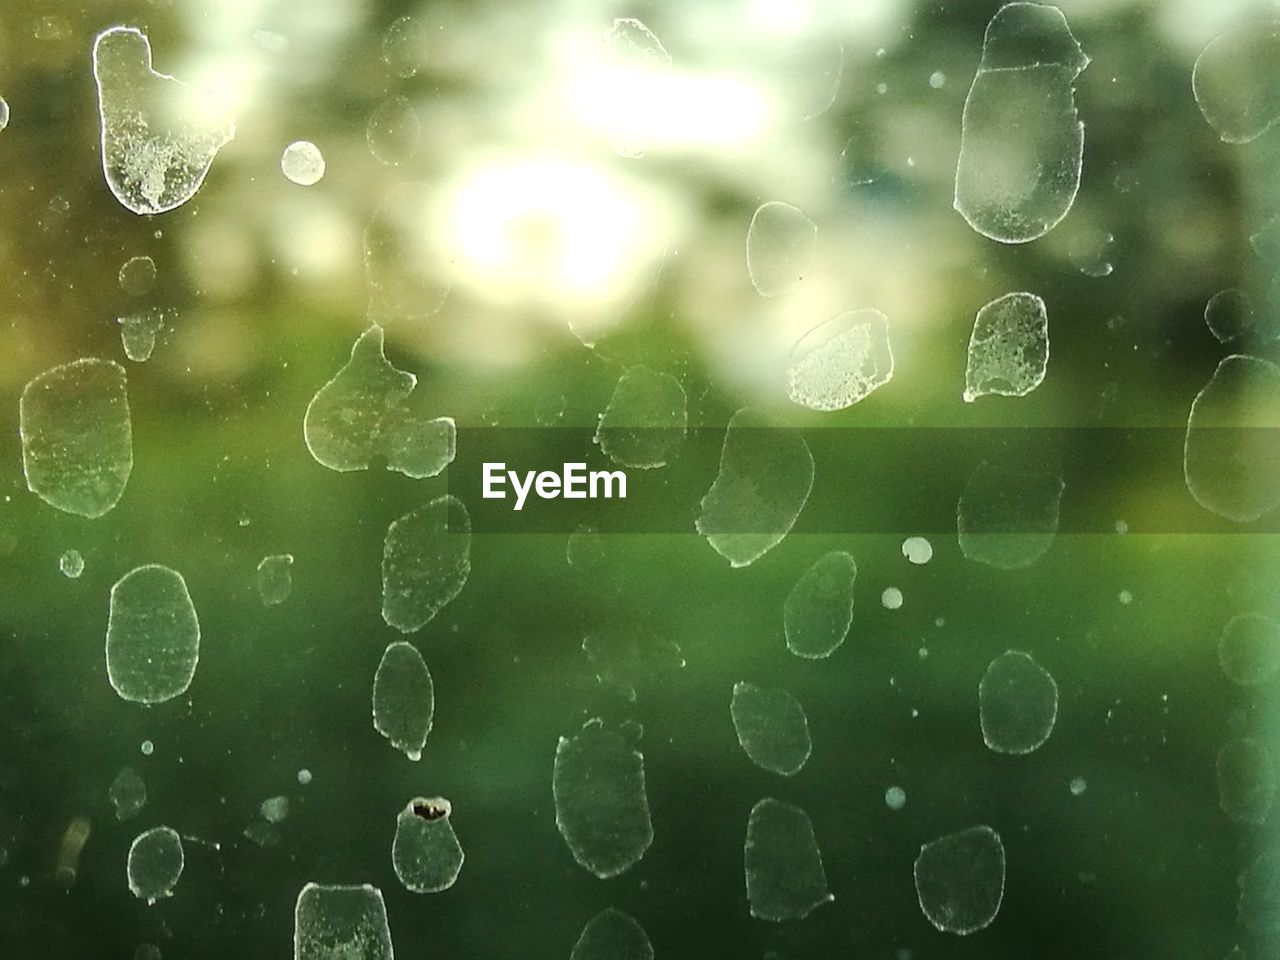 water, wet, drop, close-up, no people, full frame, nature, transparent, backgrounds, day, glass - material, bubble, window, green color, rain, outdoors, beauty in nature, raindrop, rainy season, purity